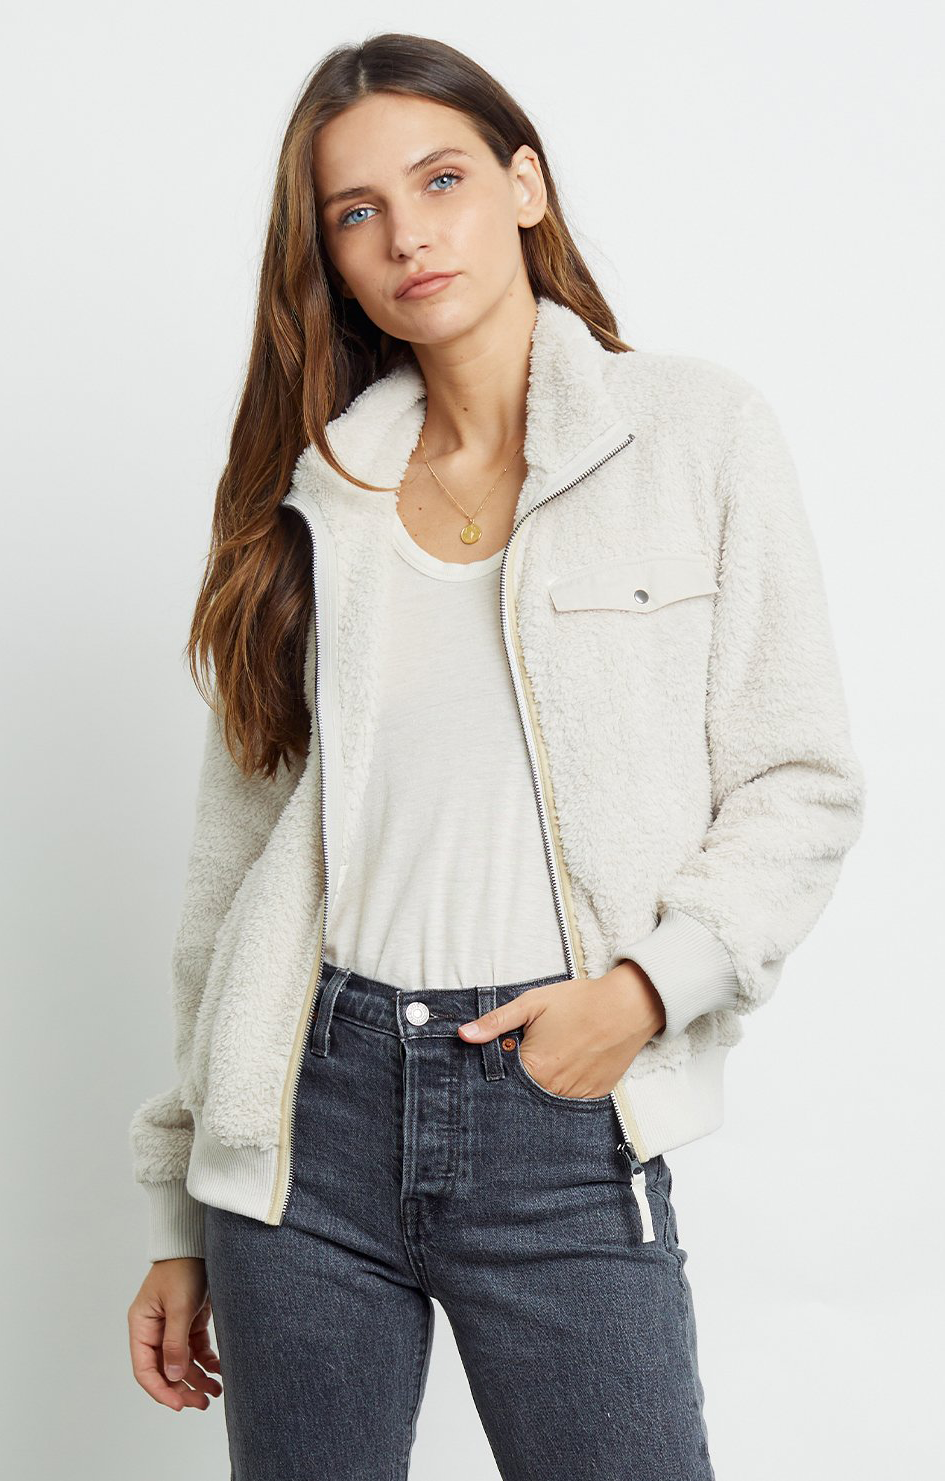 Austin Teddy Jacket - Cream